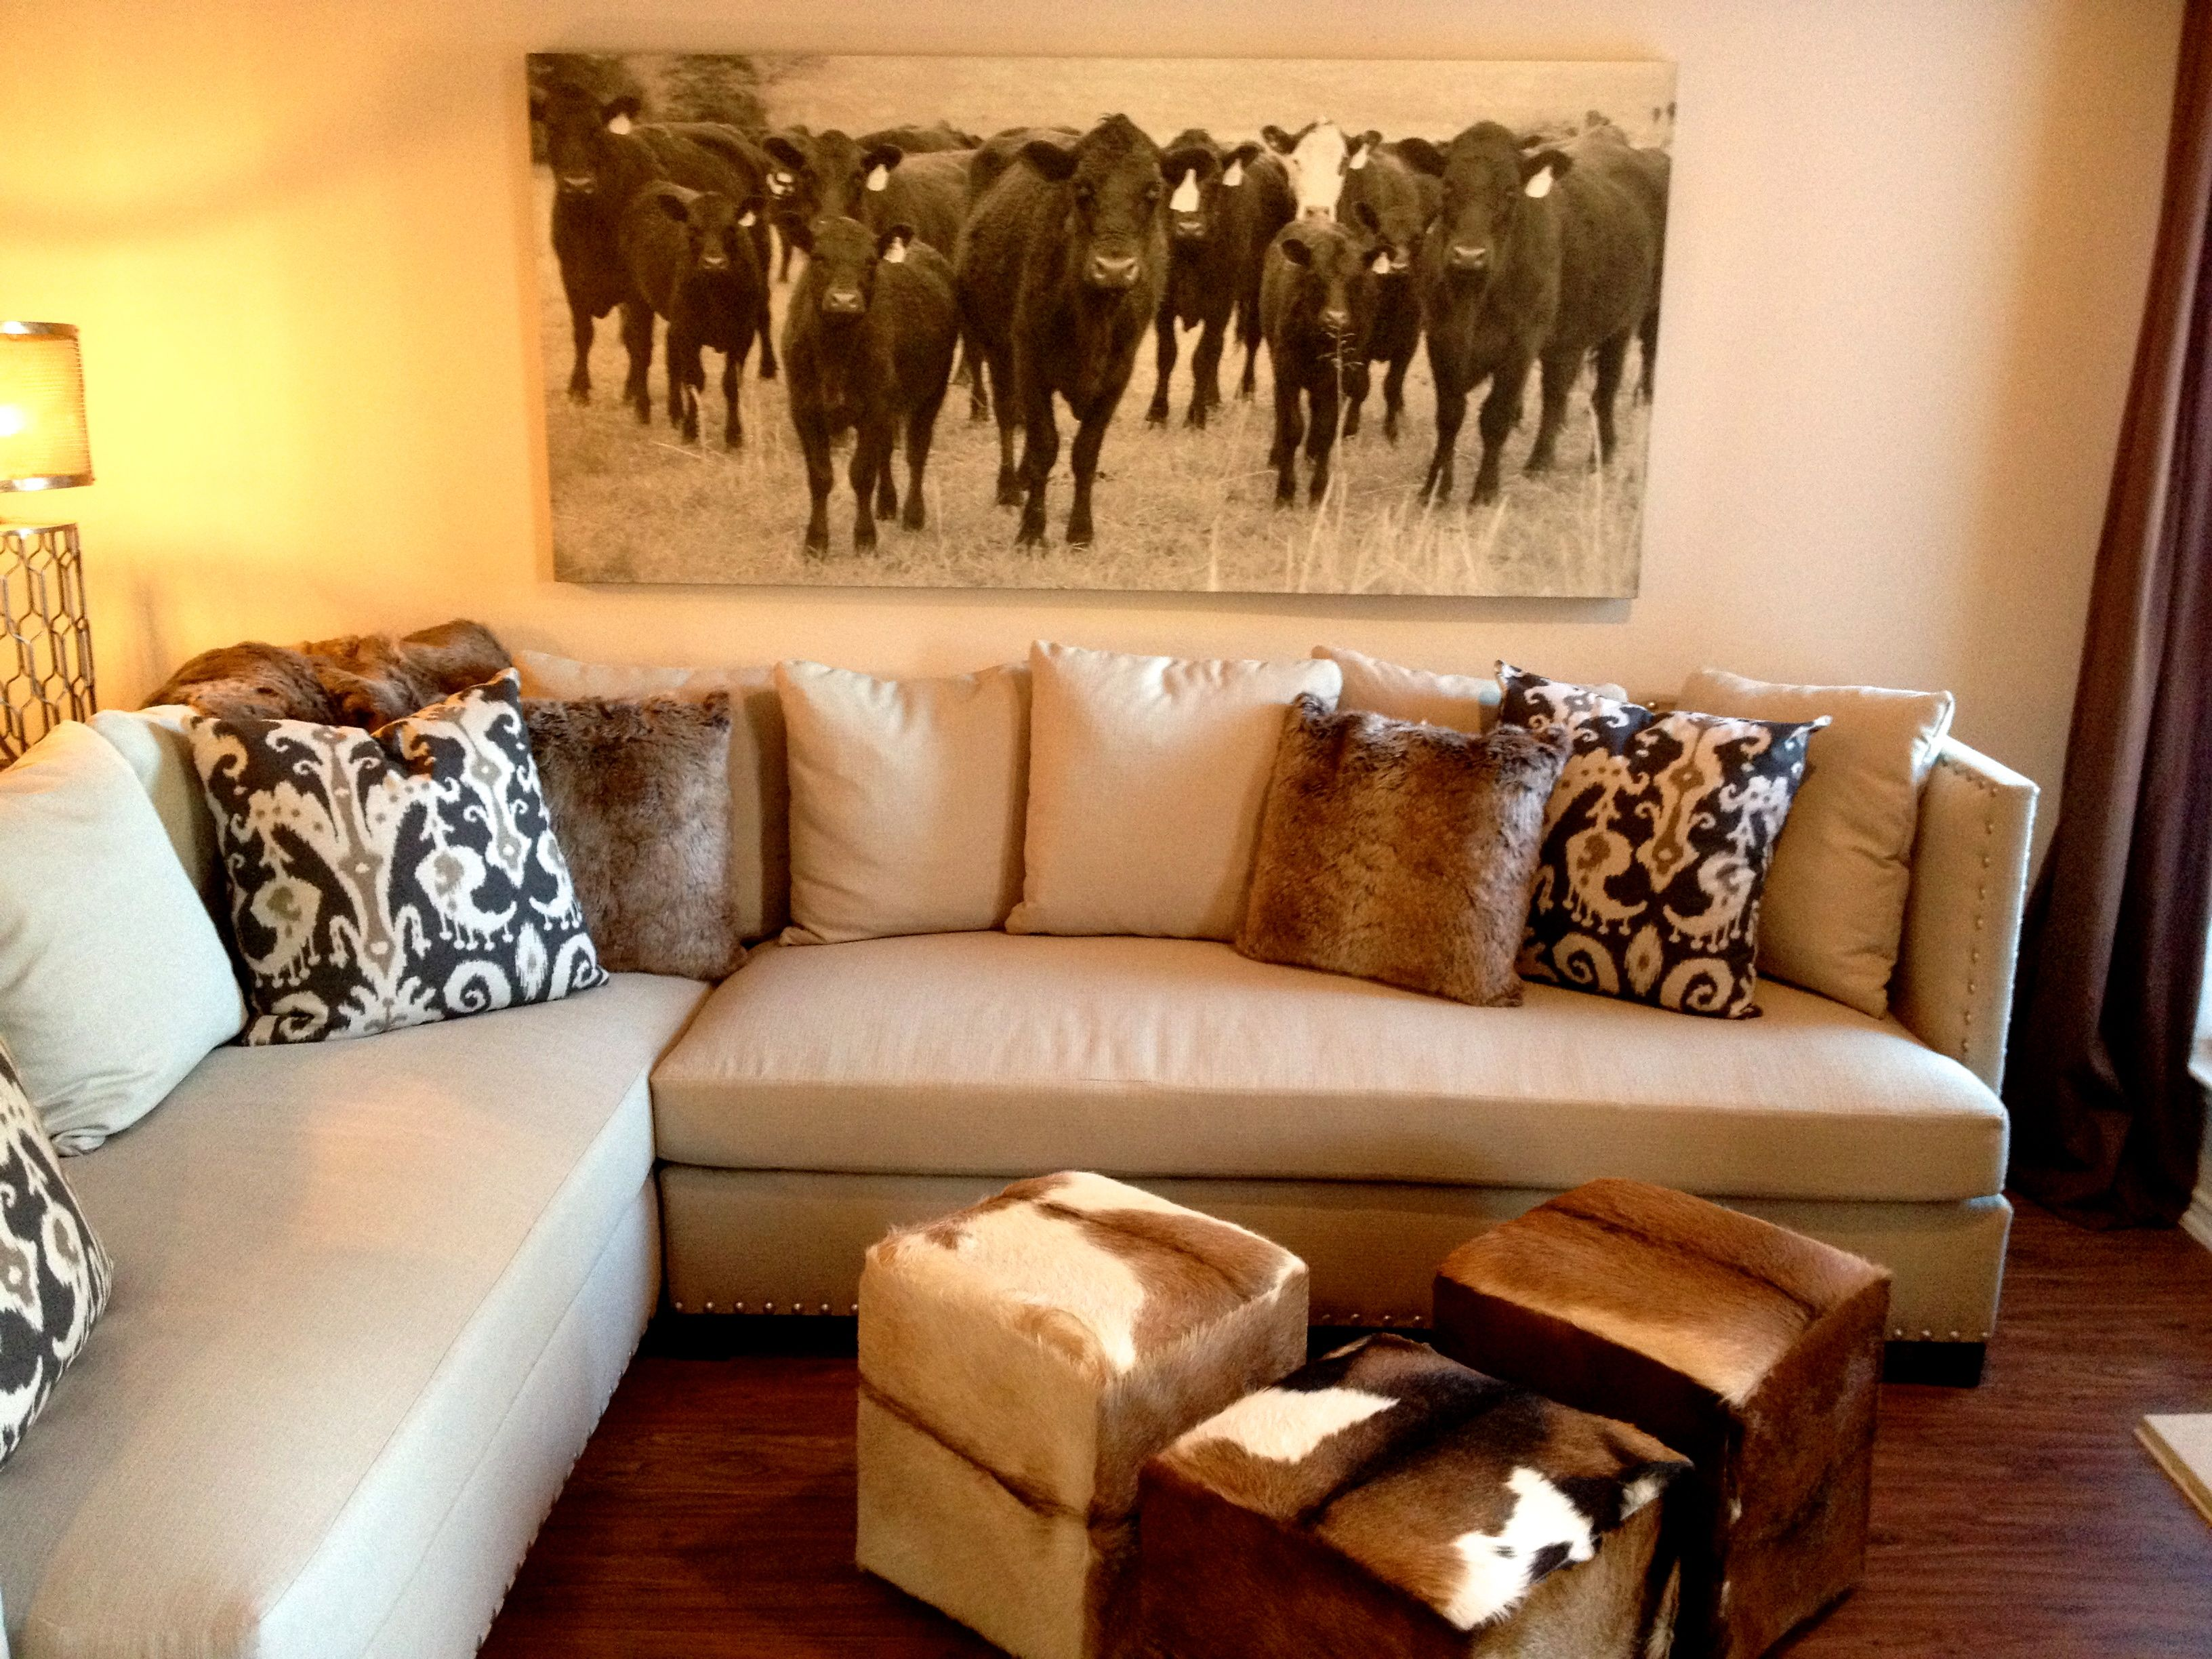 The antiqued canvas print is a quirky piece that adds a